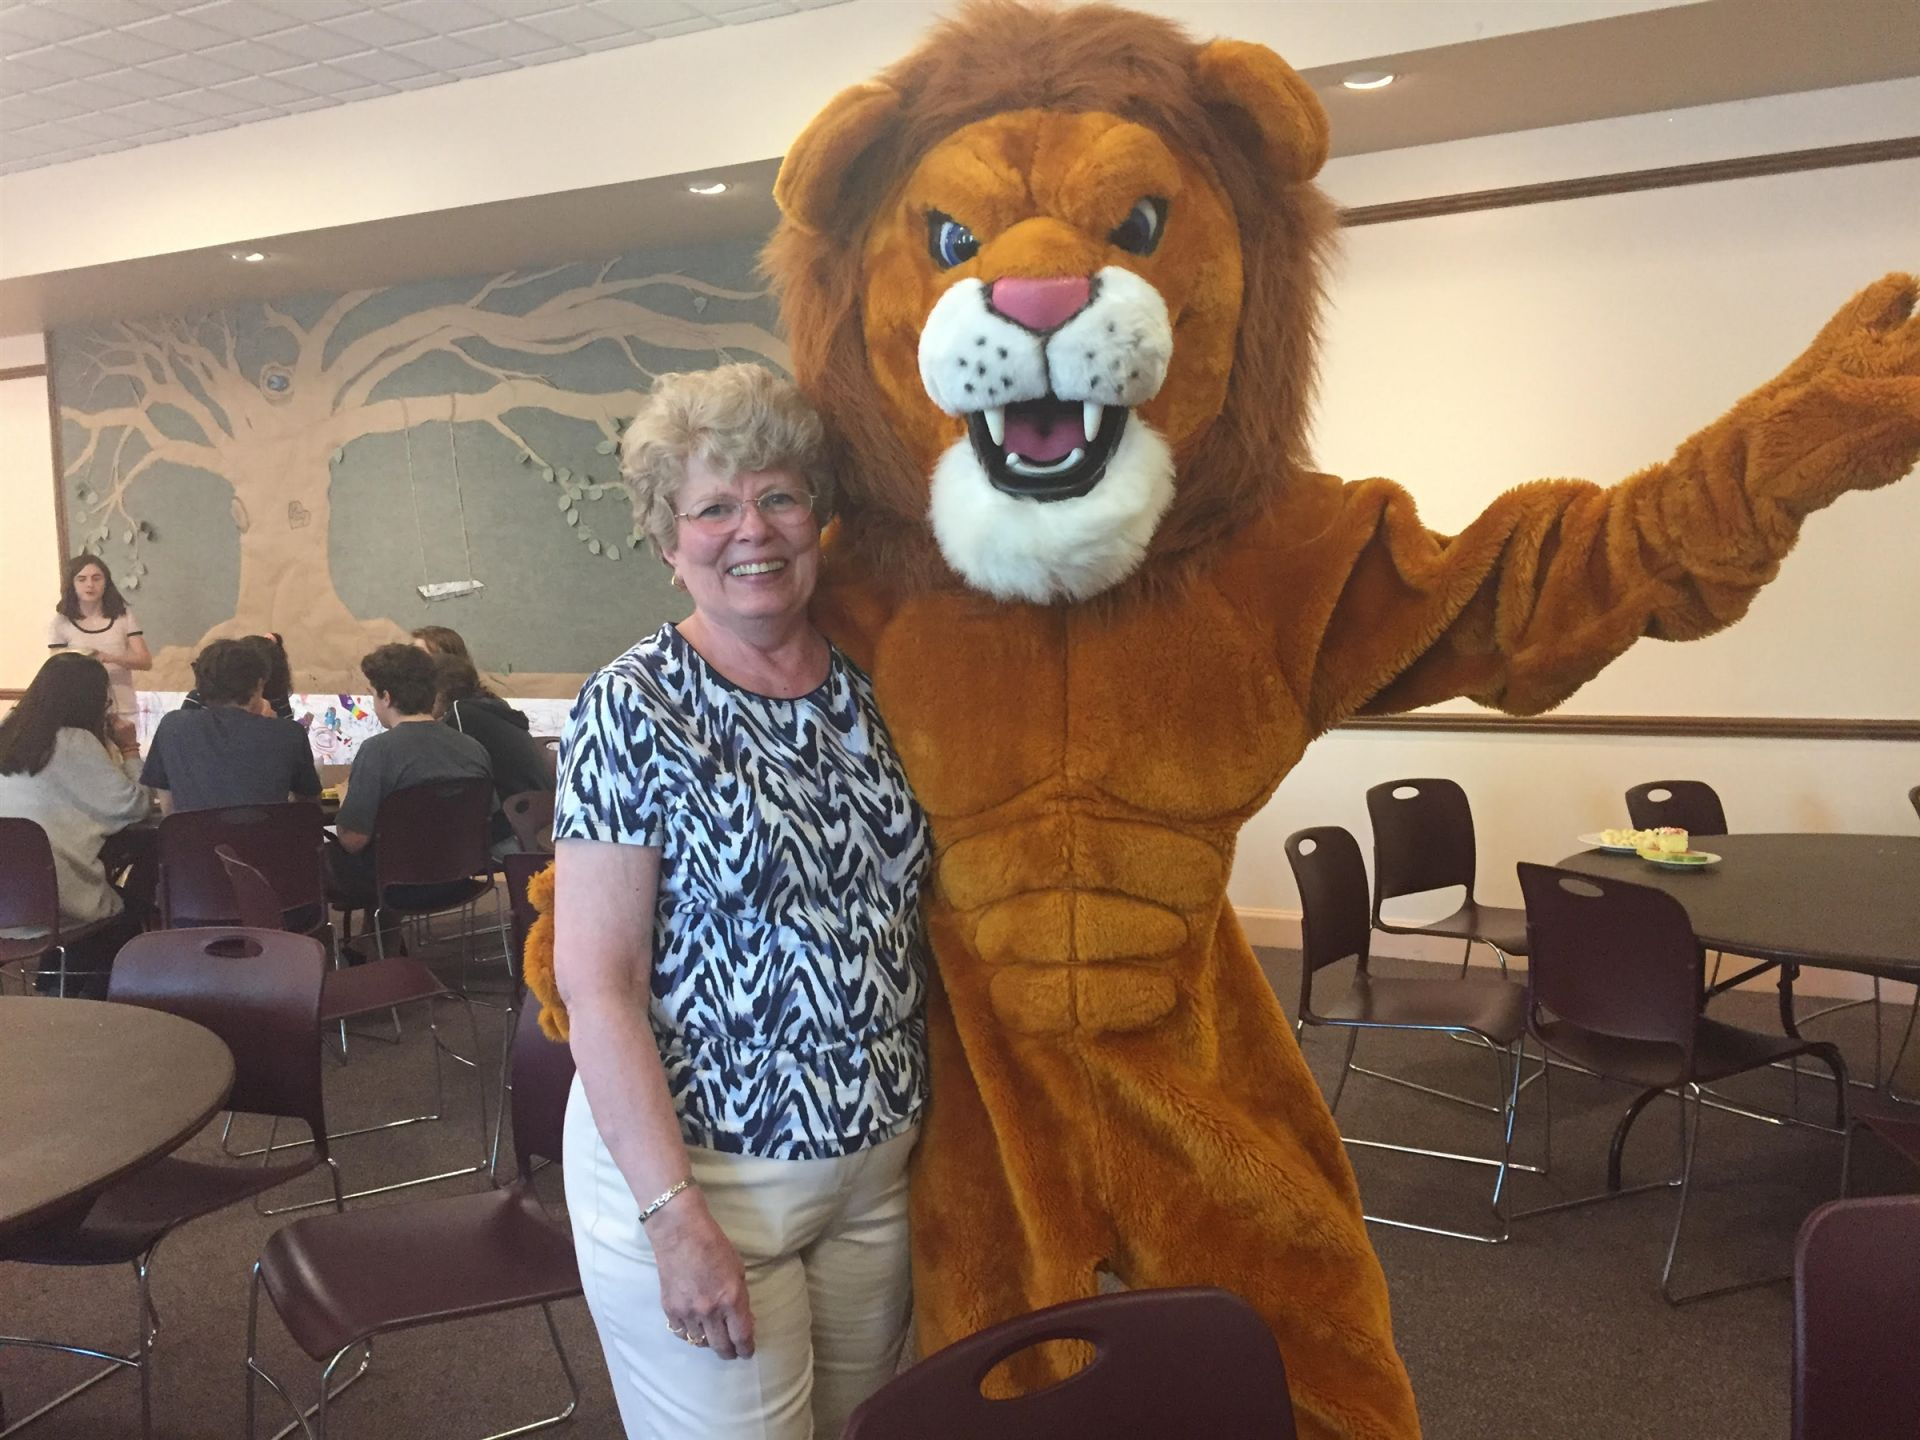 Greetings from Mrs. Nevil (former faculty and still subbing!) and MAC the Lion!